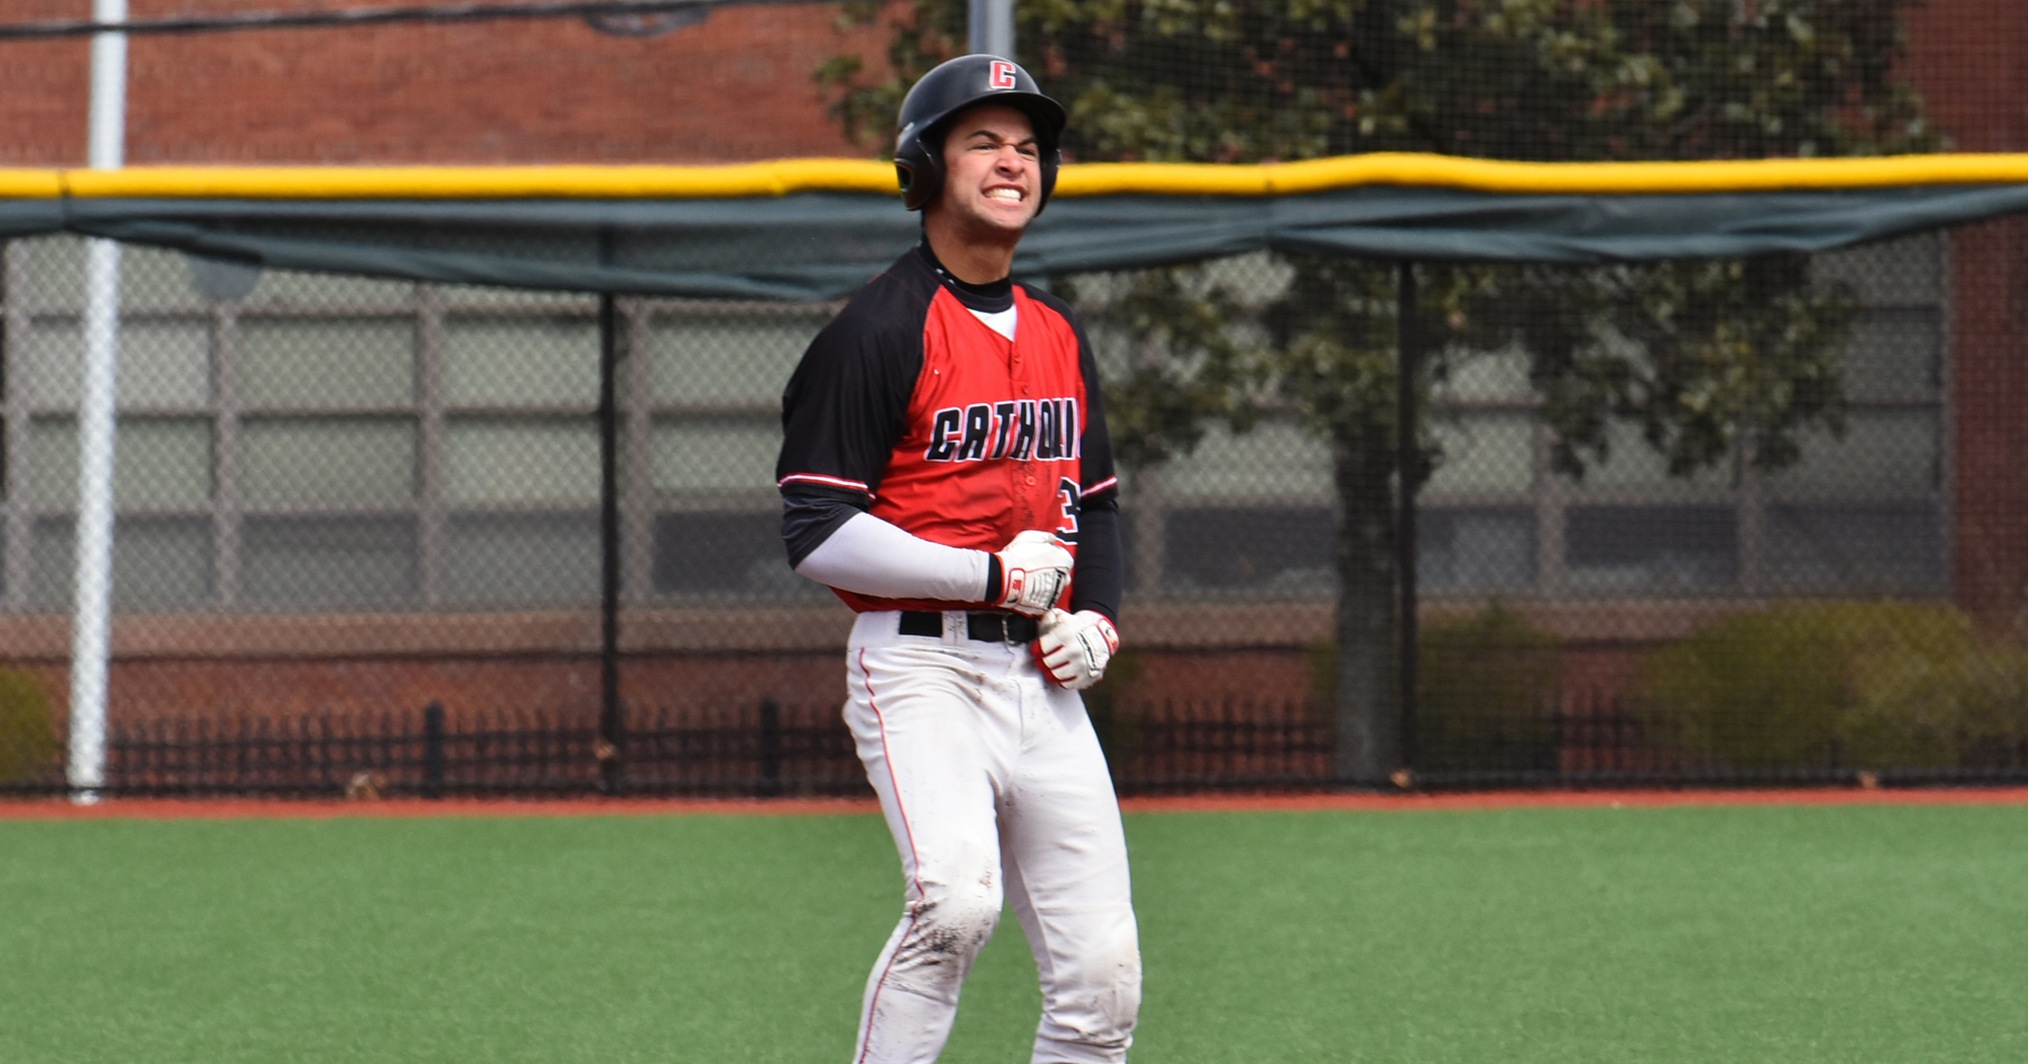 Cardinals' Hot Hitting Continues in Sweep Over Dean